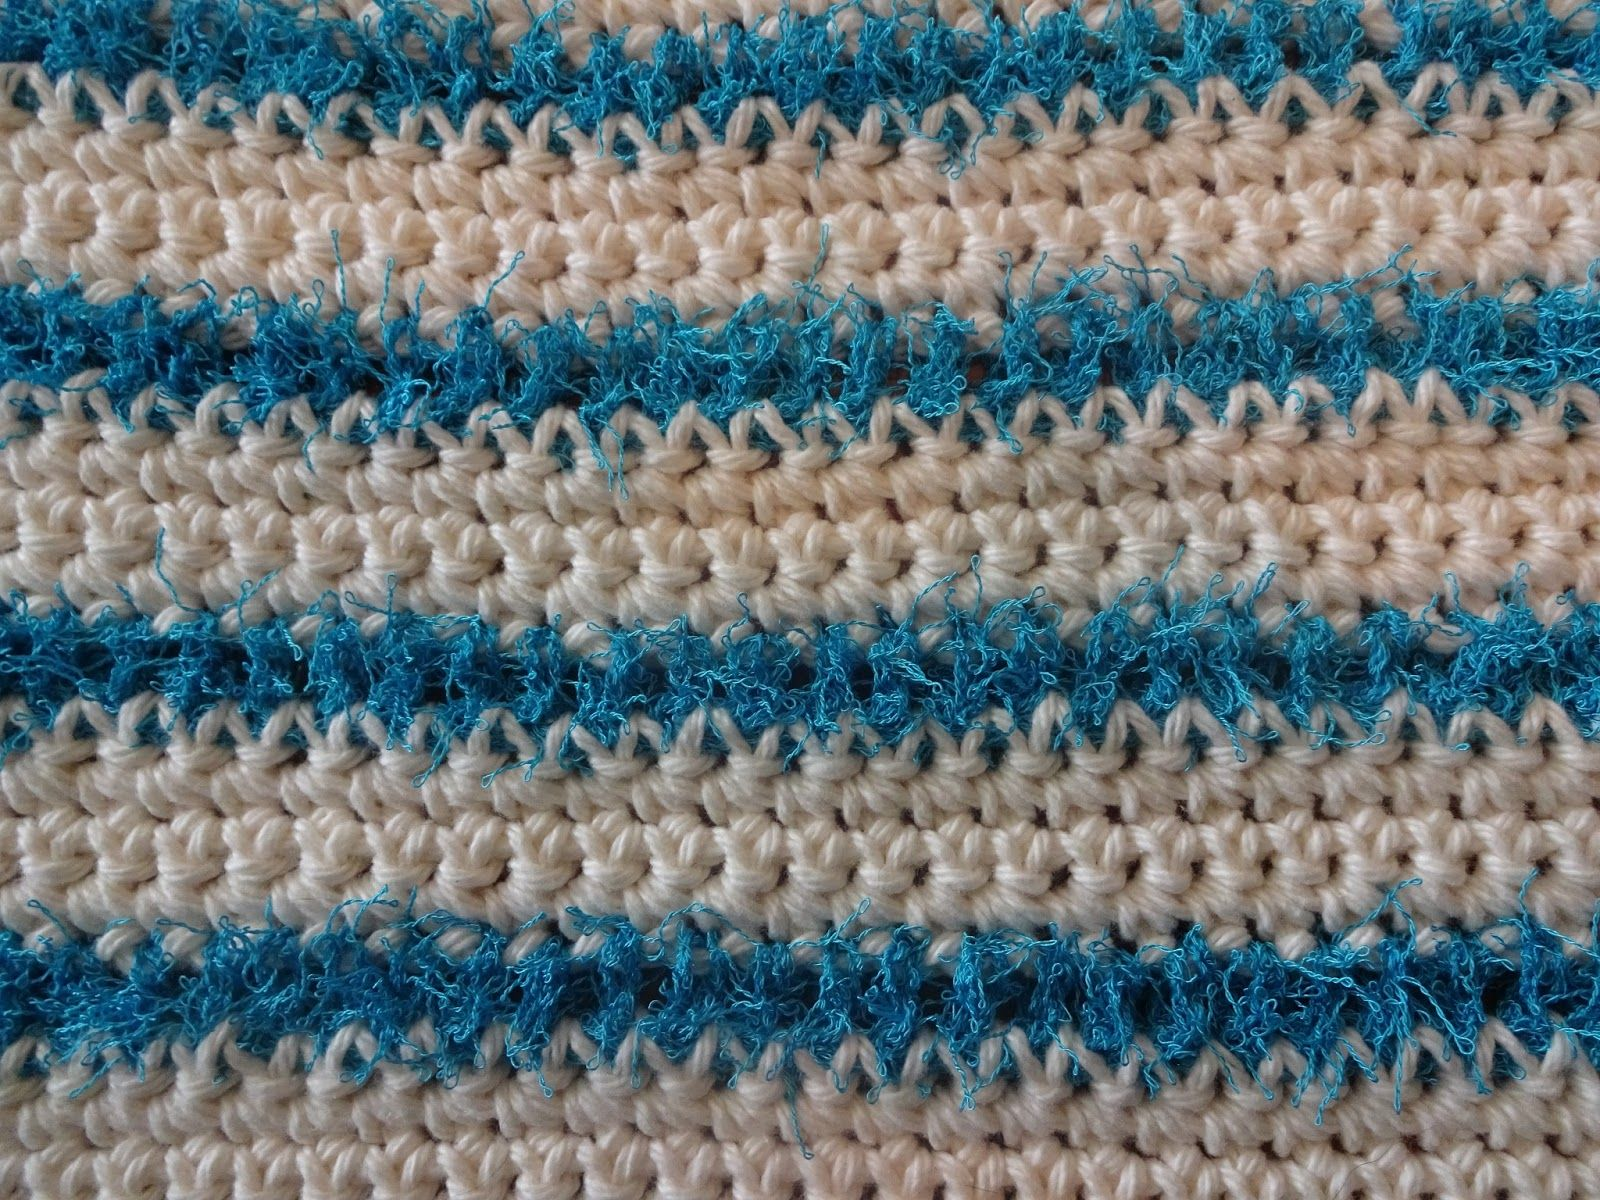 Scrubby stripes cloth pattern made with scrubby yarn and cotton scrubby stripes cloth pattern made with scrubby yarn and cotton free crochet pattern on bankloansurffo Choice Image